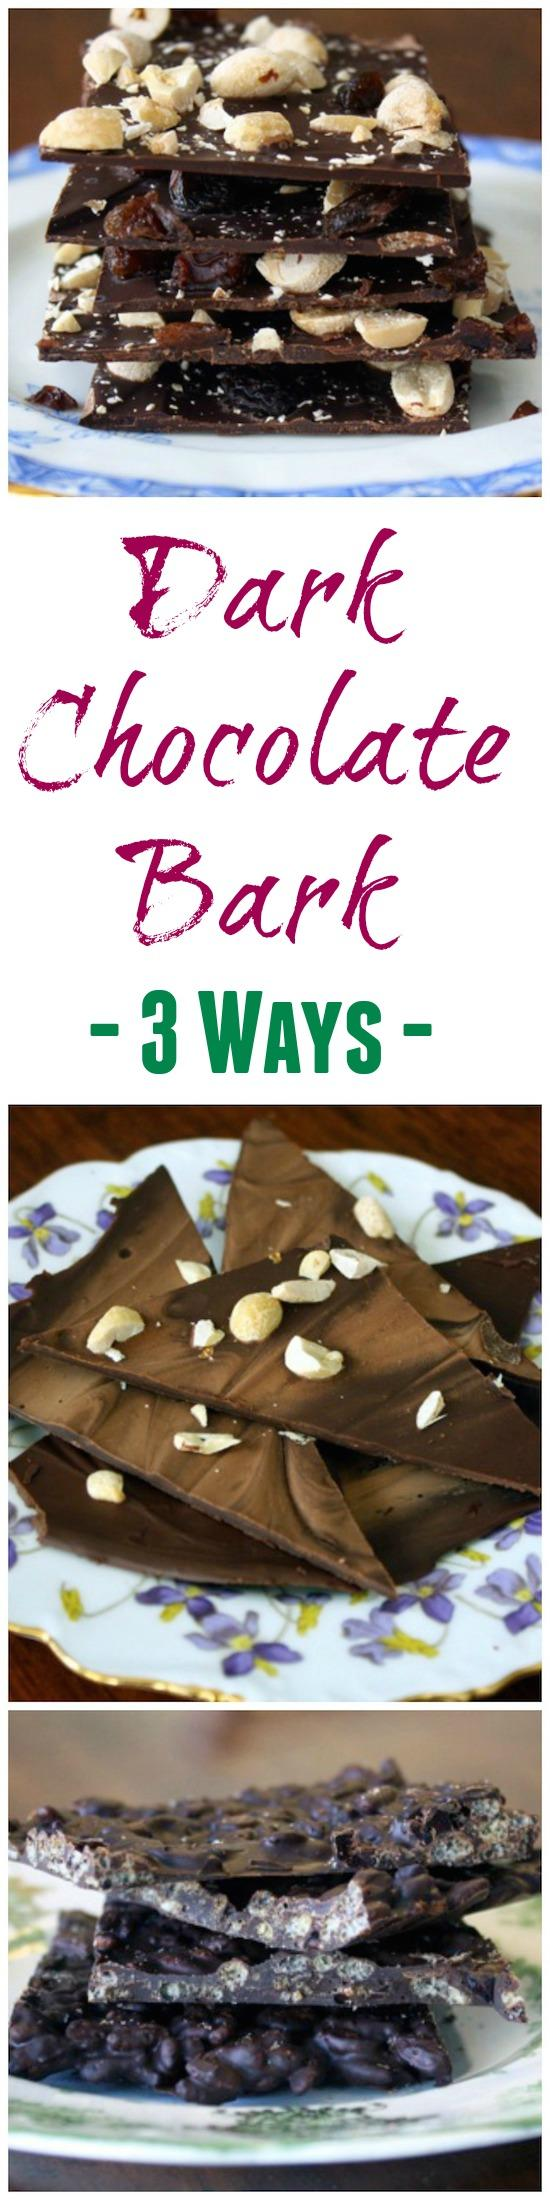 Make this dark chocolate bark for an after dinner treat. Here are three versions to make this dessert a hit with everyone!